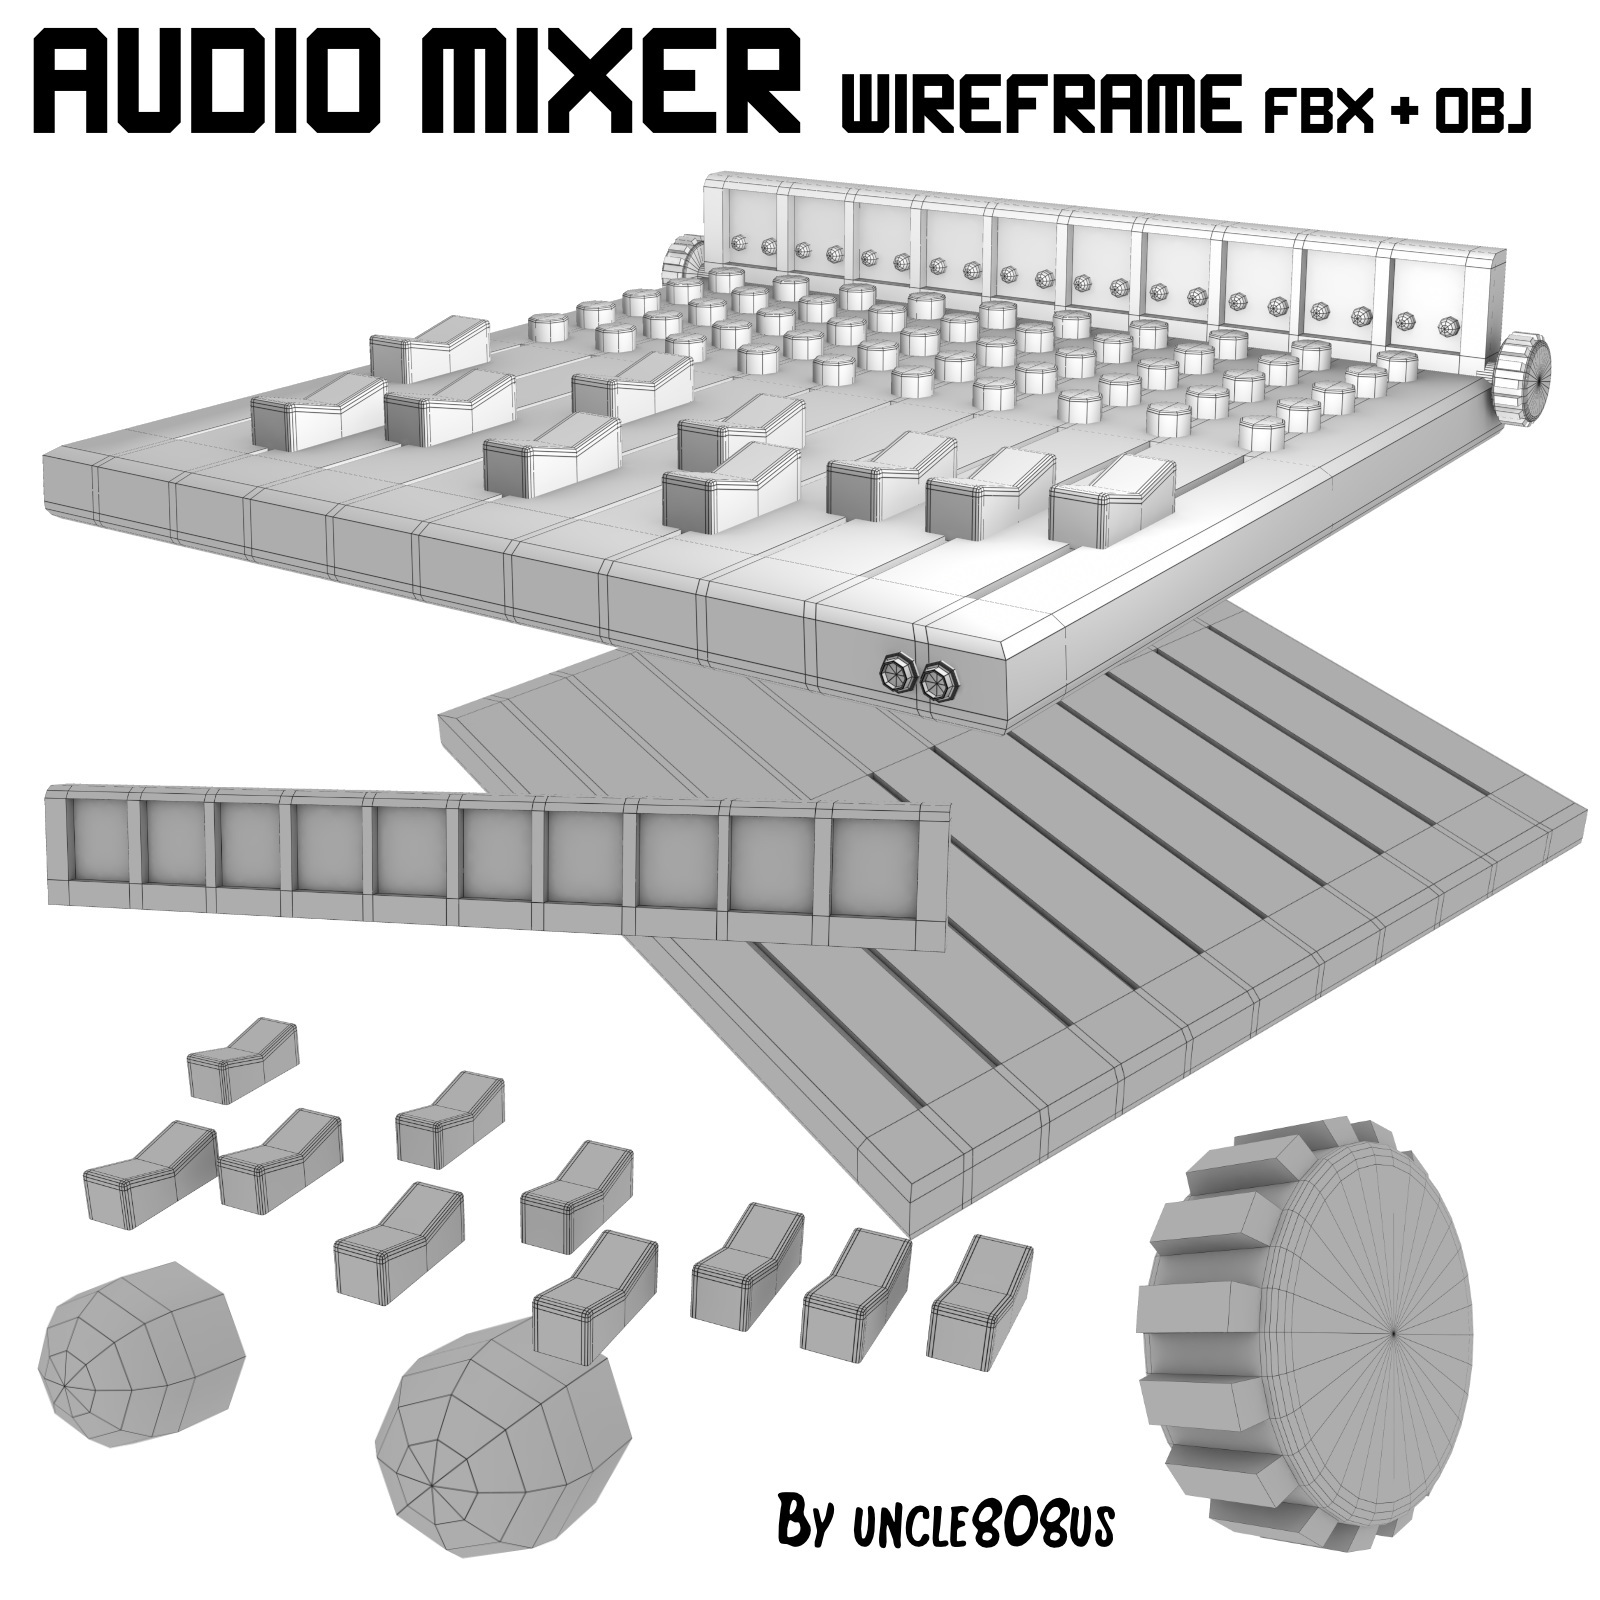 audio mixer fbx_obj 3d model fbx 220270